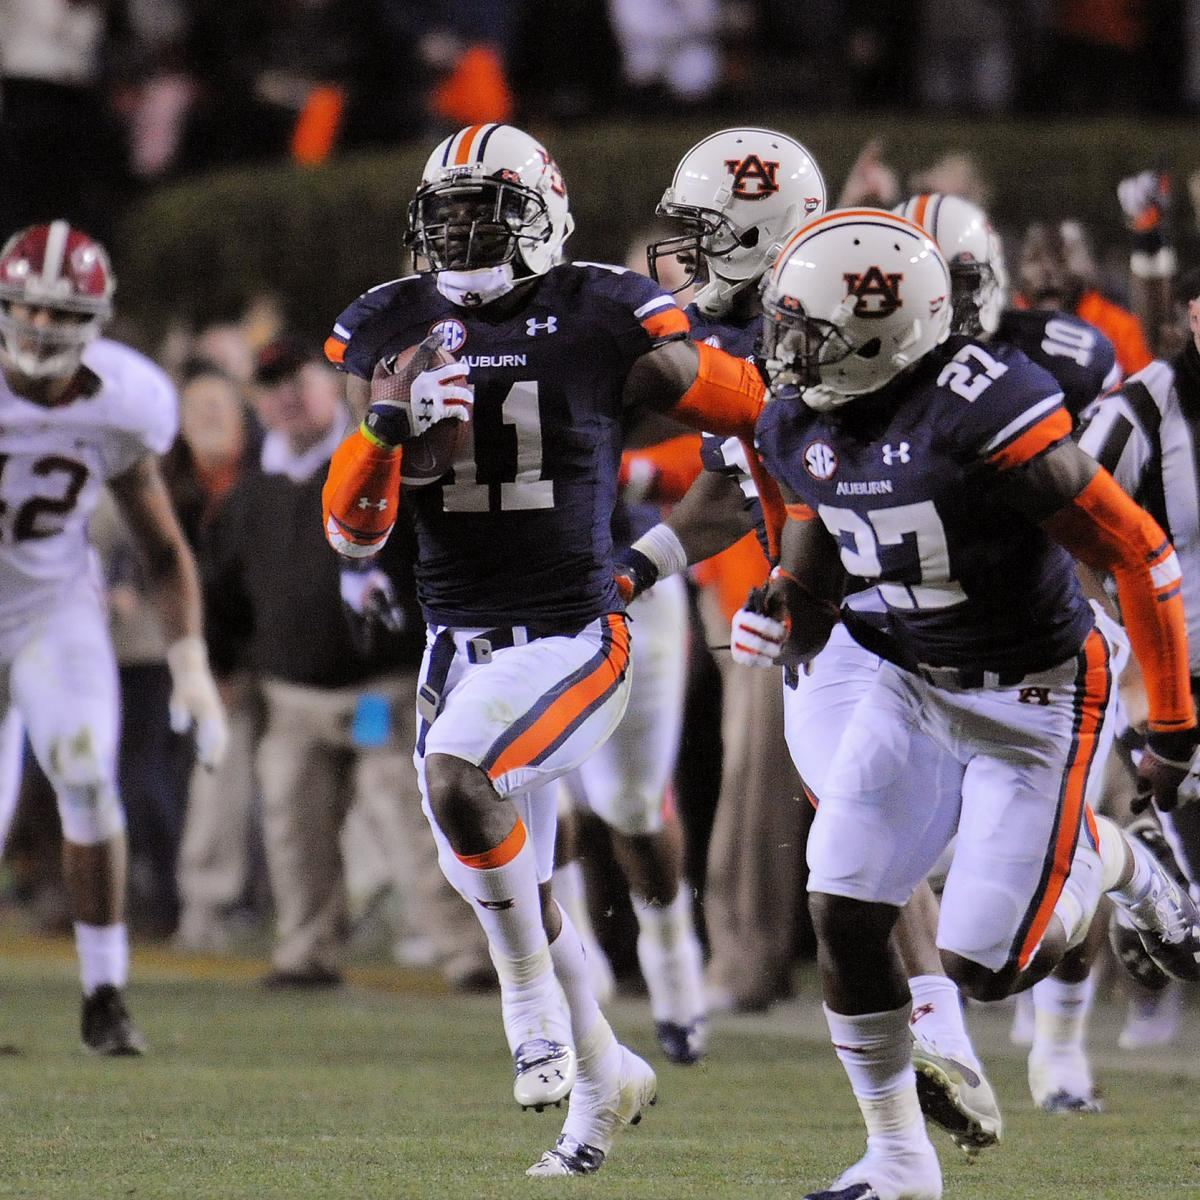 football college names rivalry ranking latest articles report